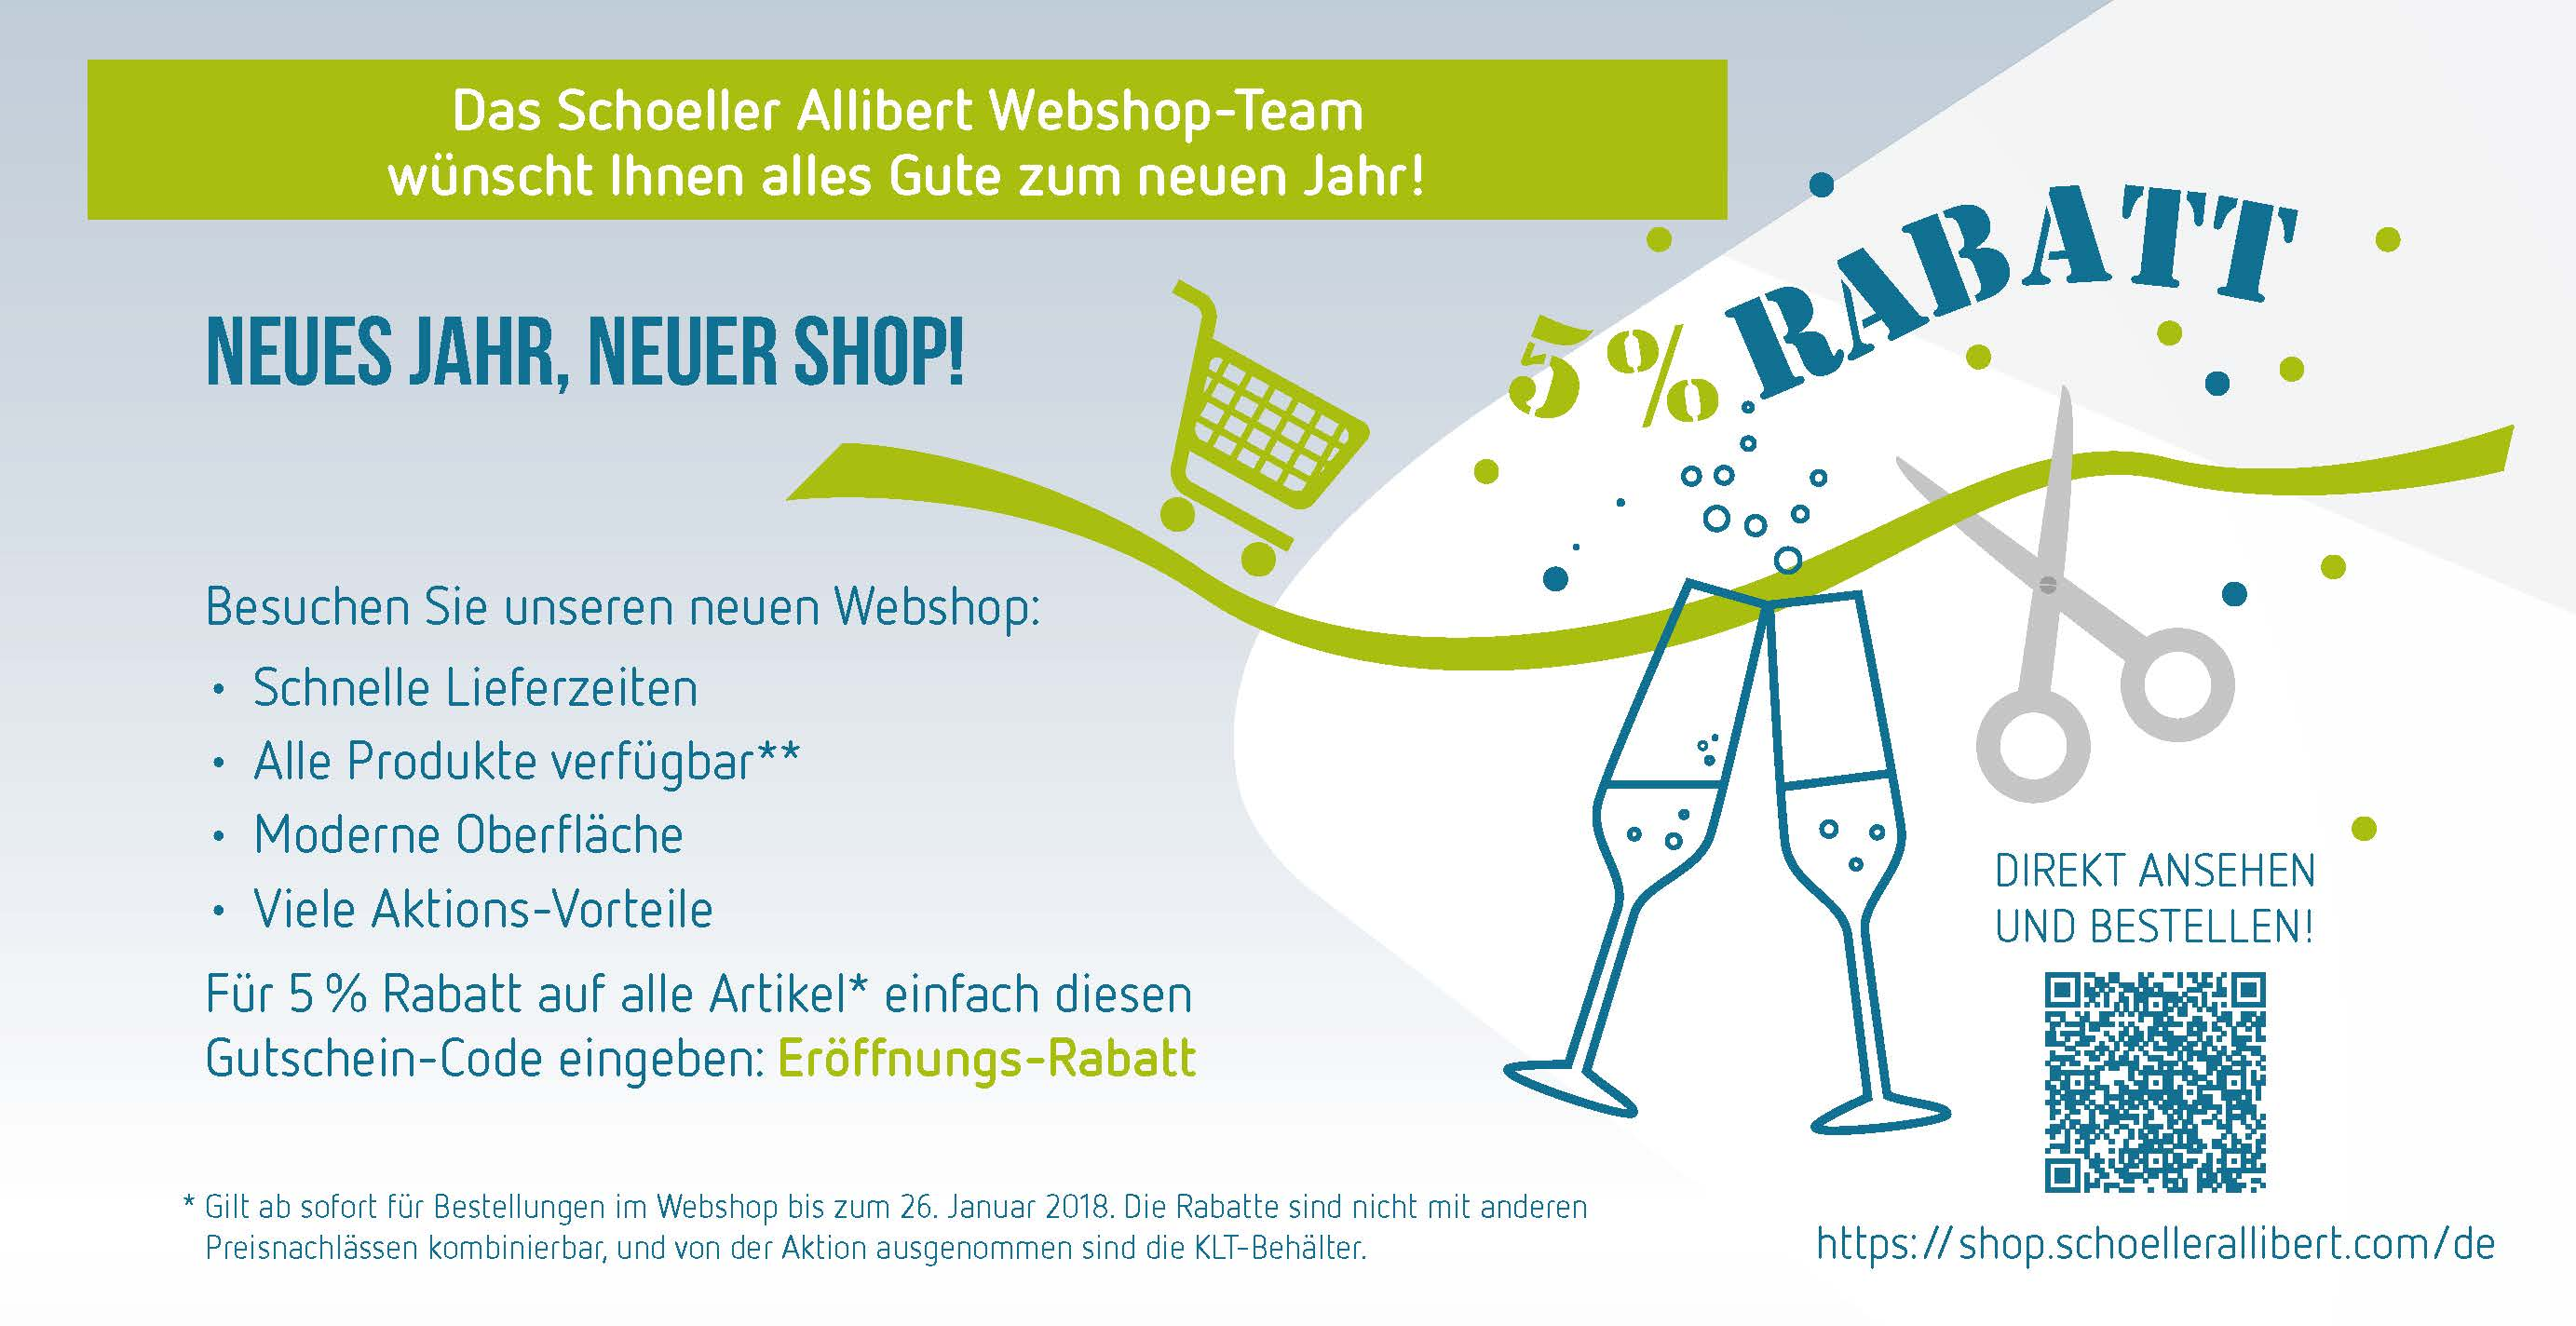 Neu in 2018: der Schoeller Allibert-Webshop